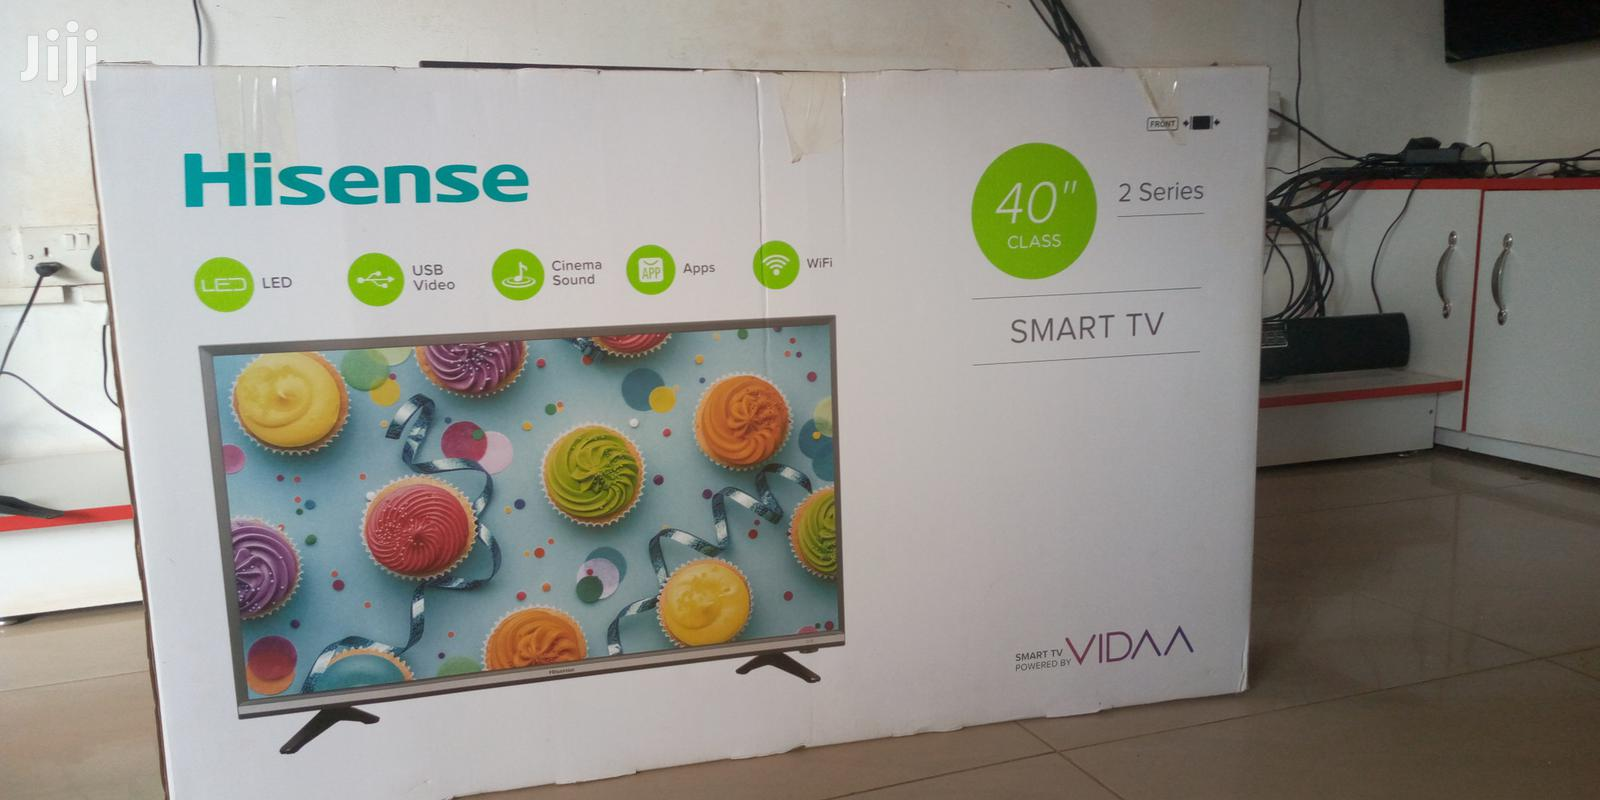 Archive: Hisense Led Smart Flat Screen Digital 40 Inches